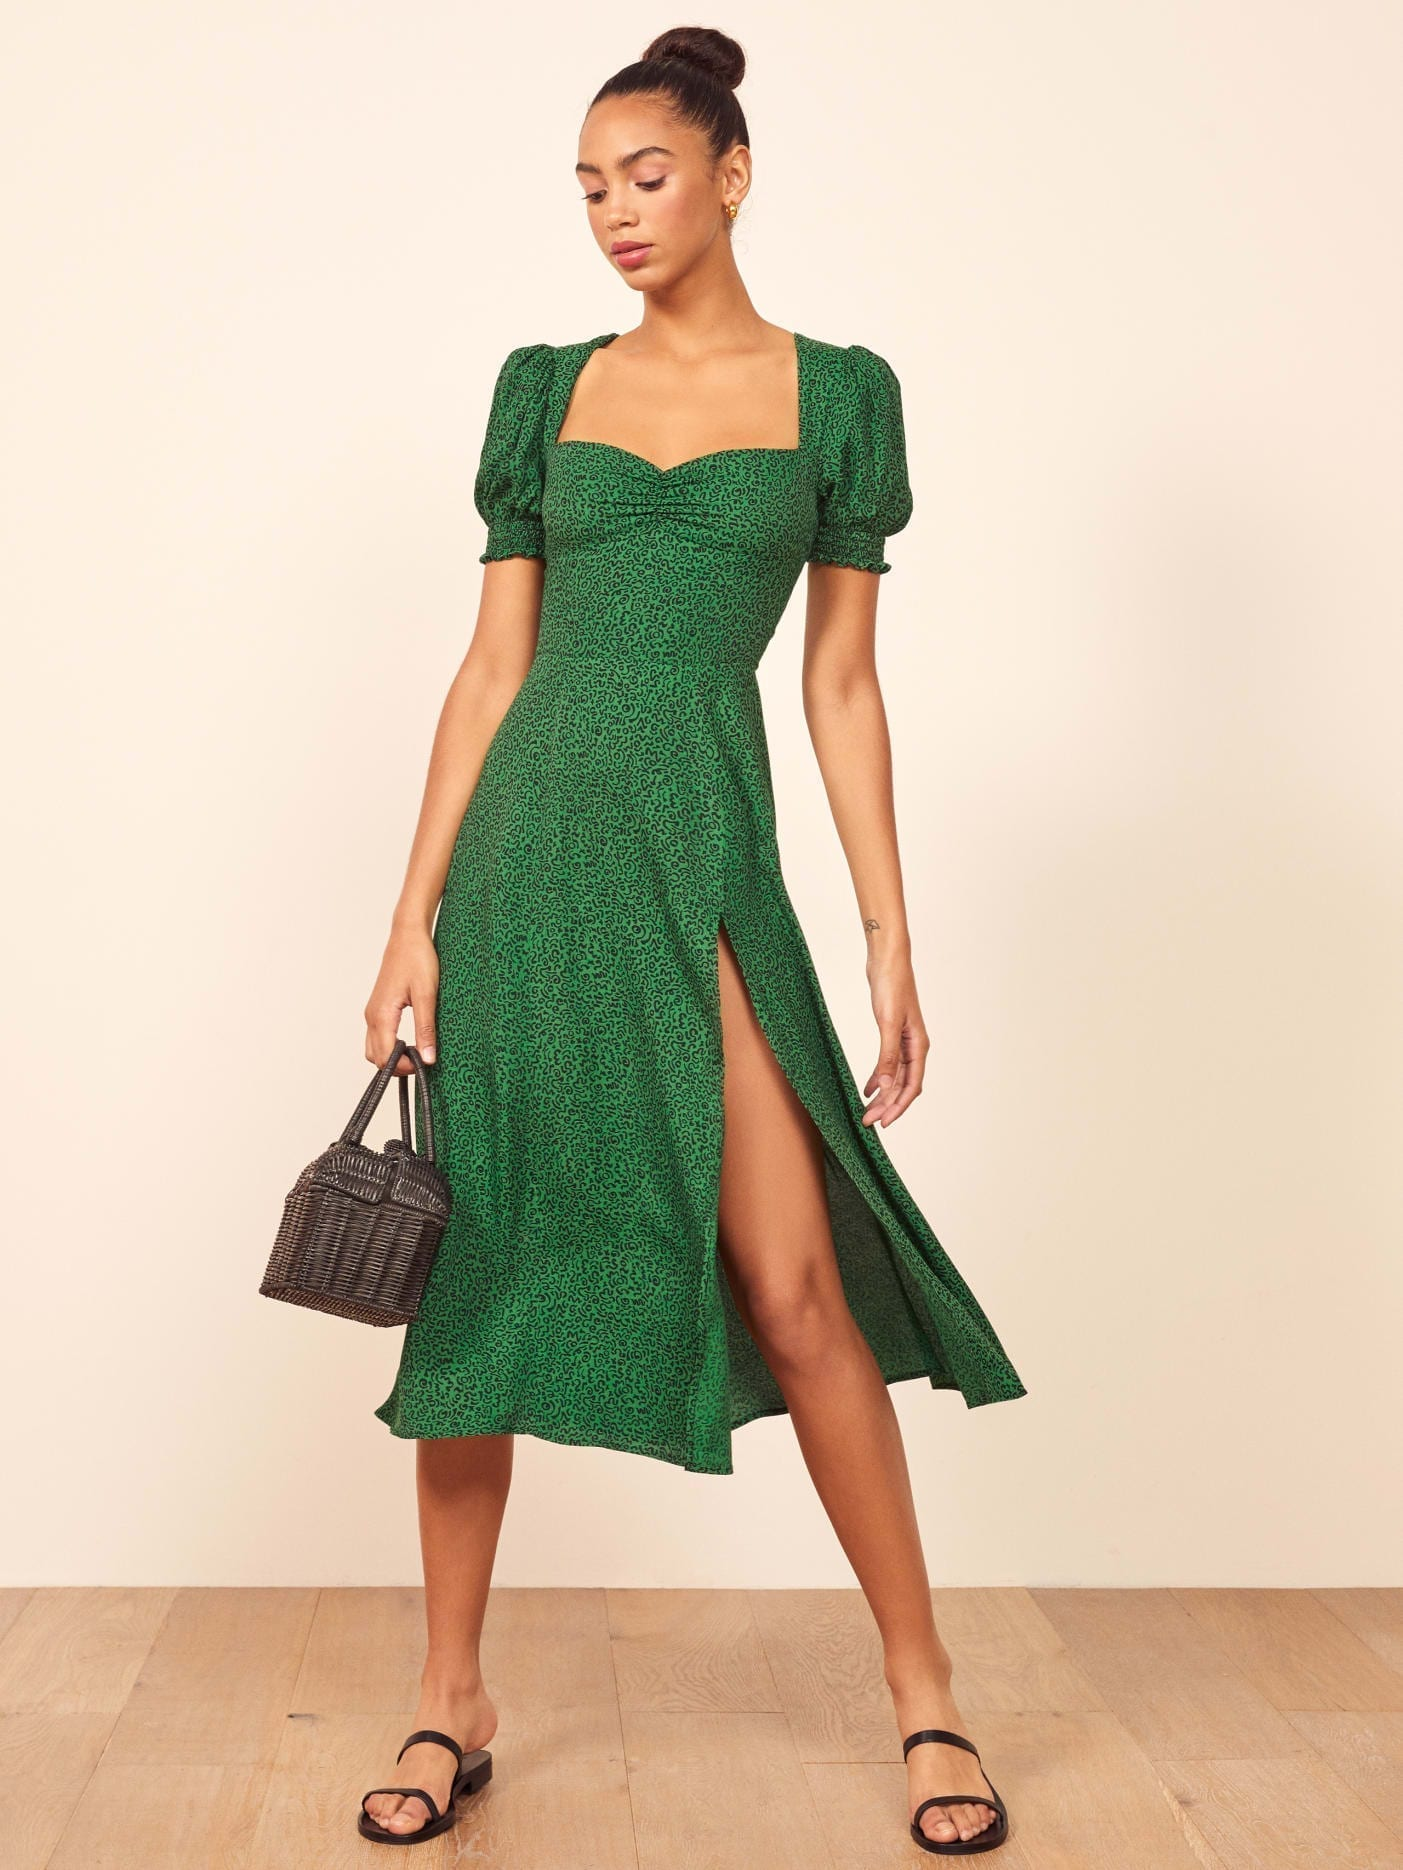 THEREFORMATION Lacey Green Dress